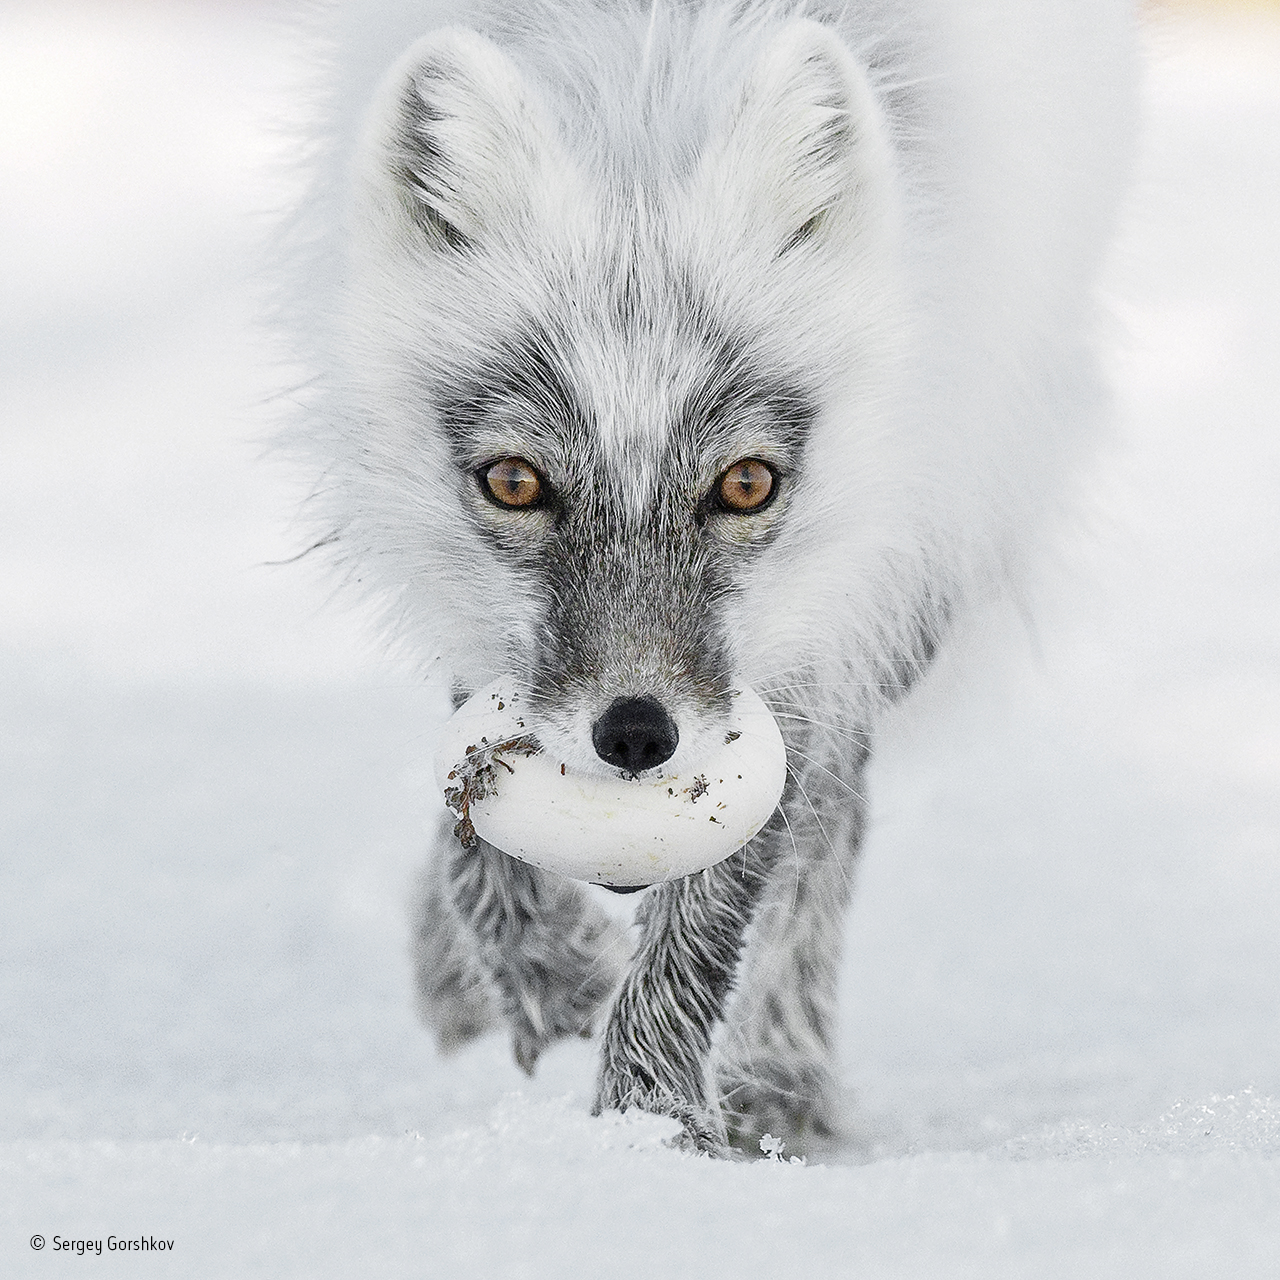 Russia, Wrangel Island, The Arctic fox with an egg